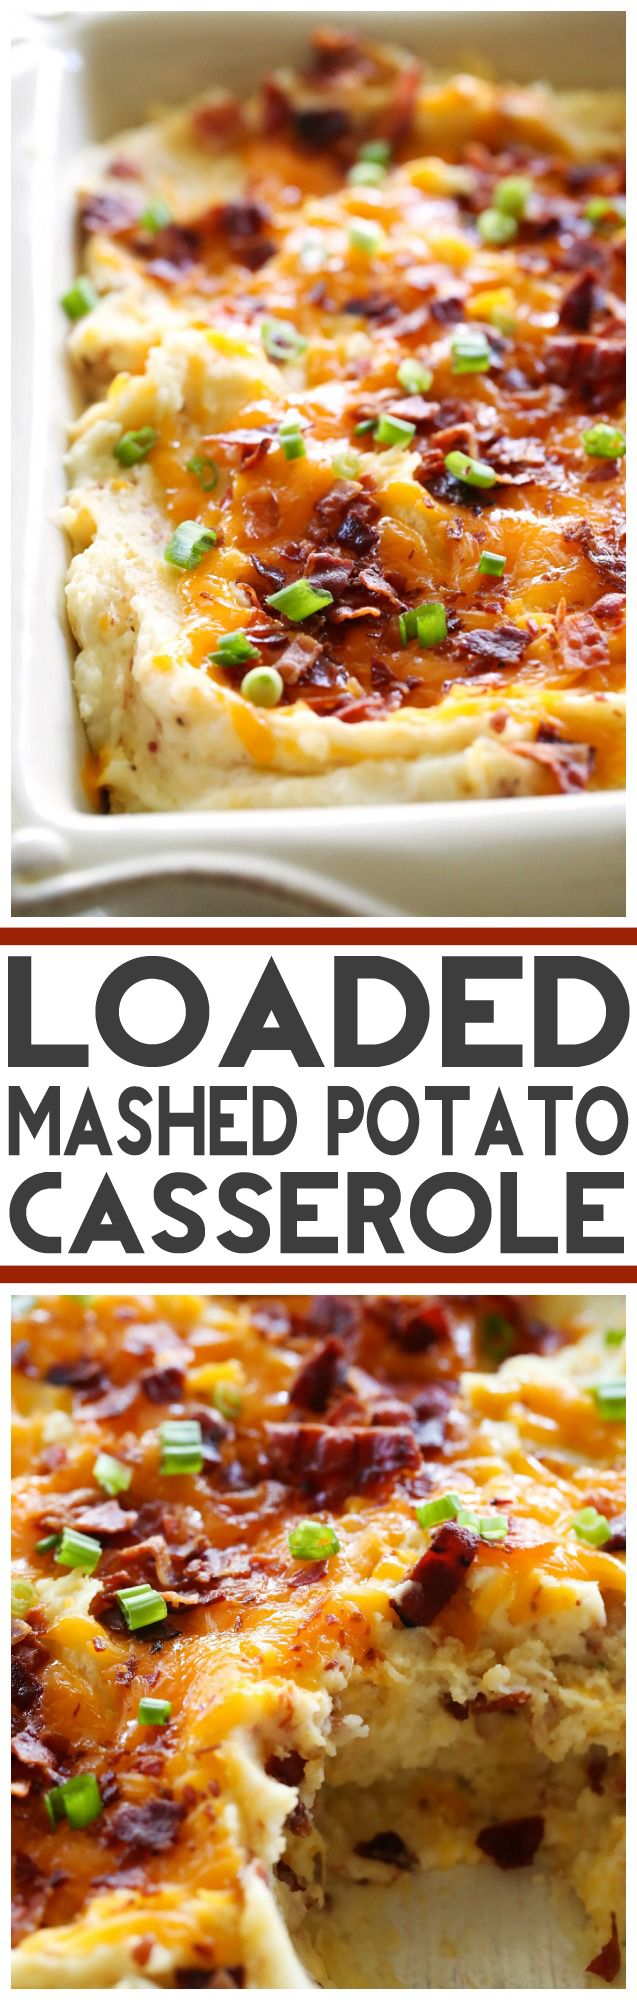 motorcycle wallet chains Loaded Mashed Potato Casserole... This recipe takes mashed potatoes to a whole new delicious level! These potatoes will be the star of the dinner table! They are my new favorite potato recipe!